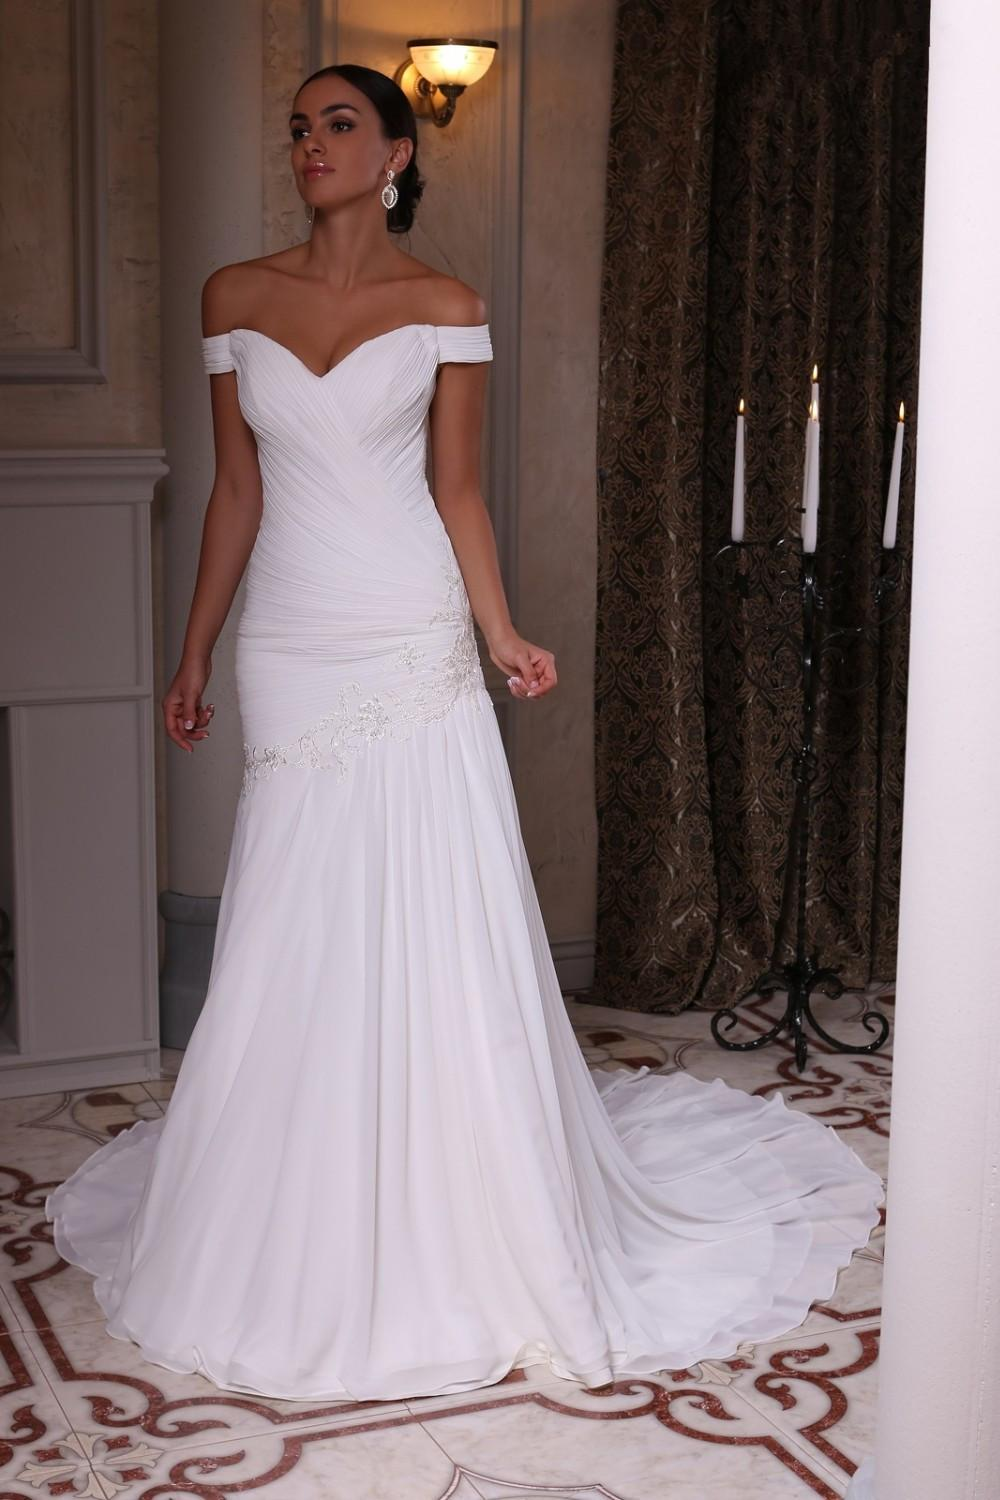 average price of wedding dress in south africa did wedding dress